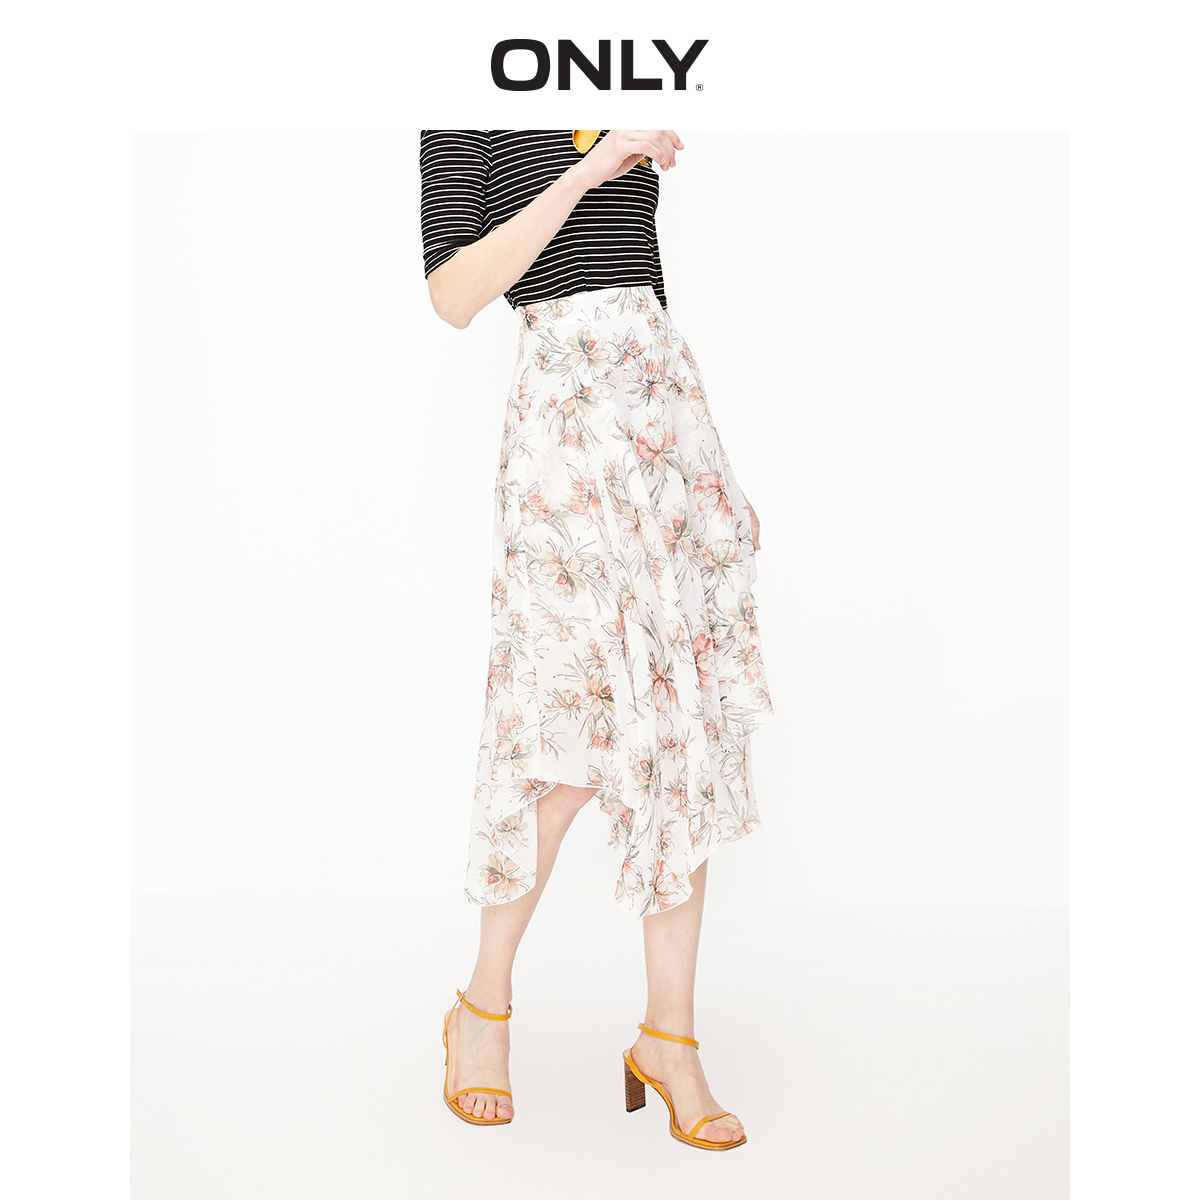 ONLY Women's High-rise Irregular Floral Chiffon Skirt | 119216505